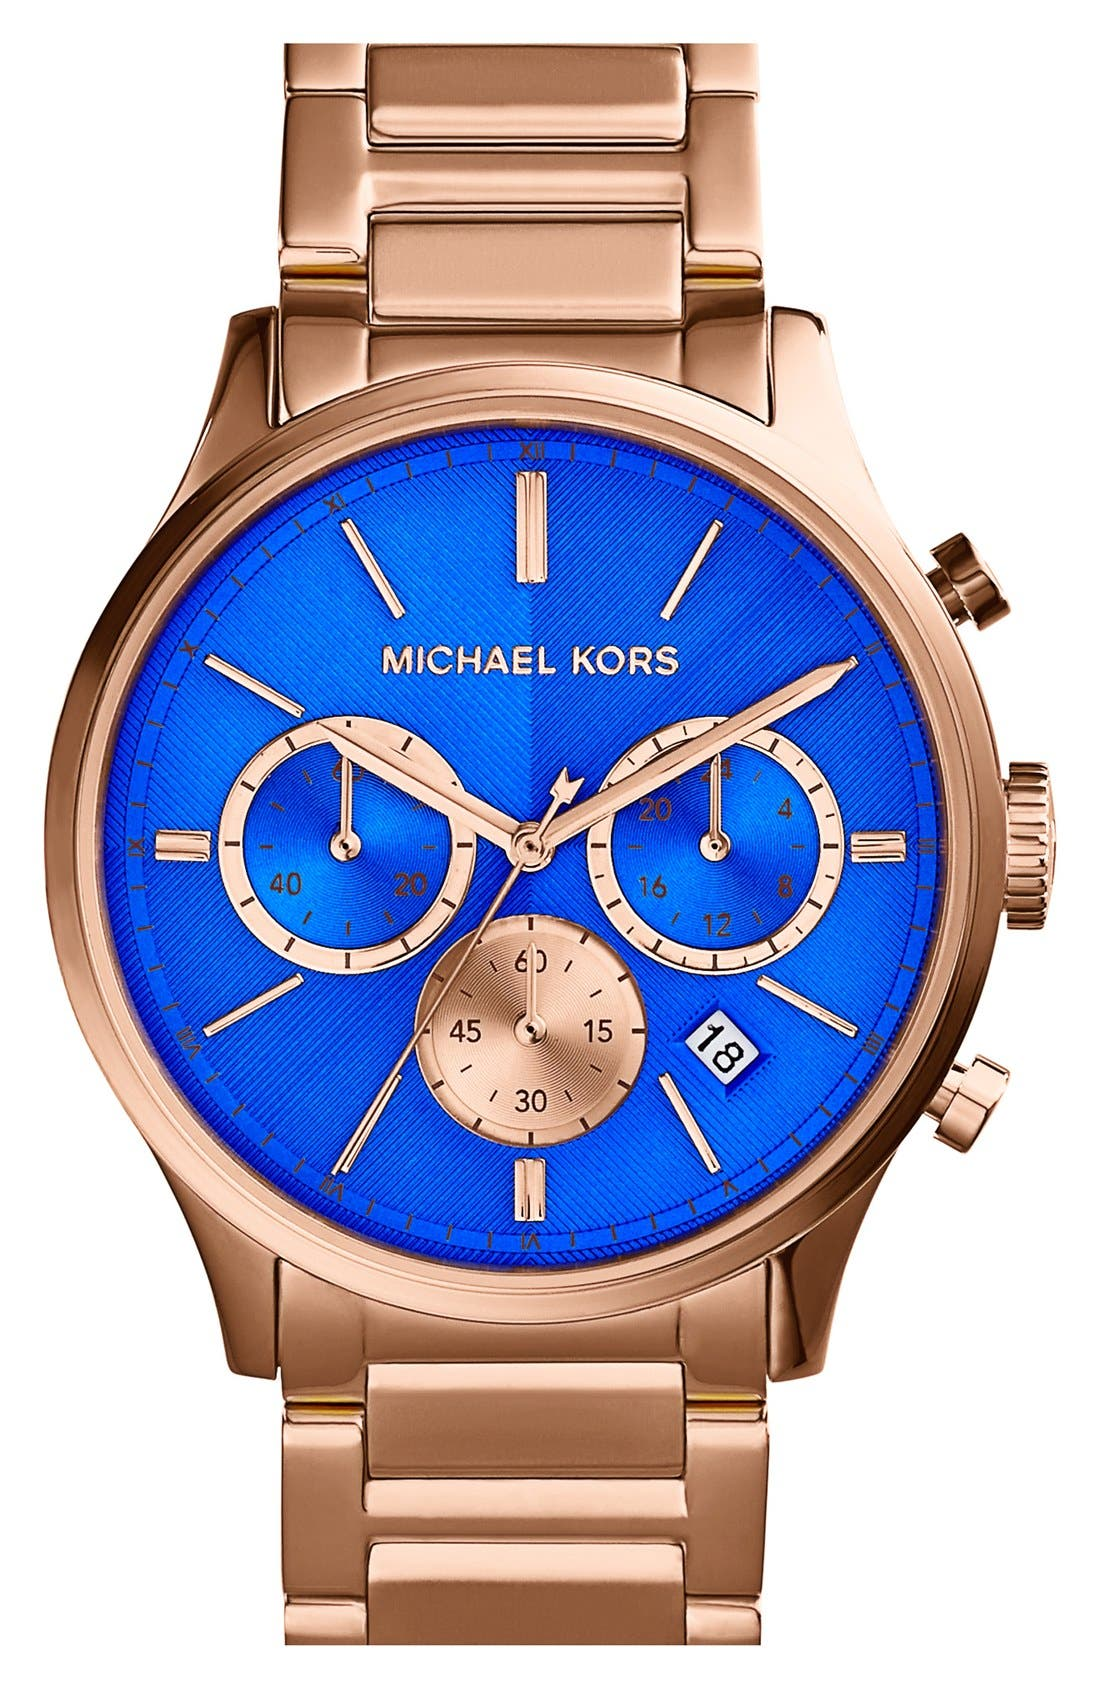 Main Image - Michael Kors 'Bailey' Chronograph Bracelet Watch, 44mm